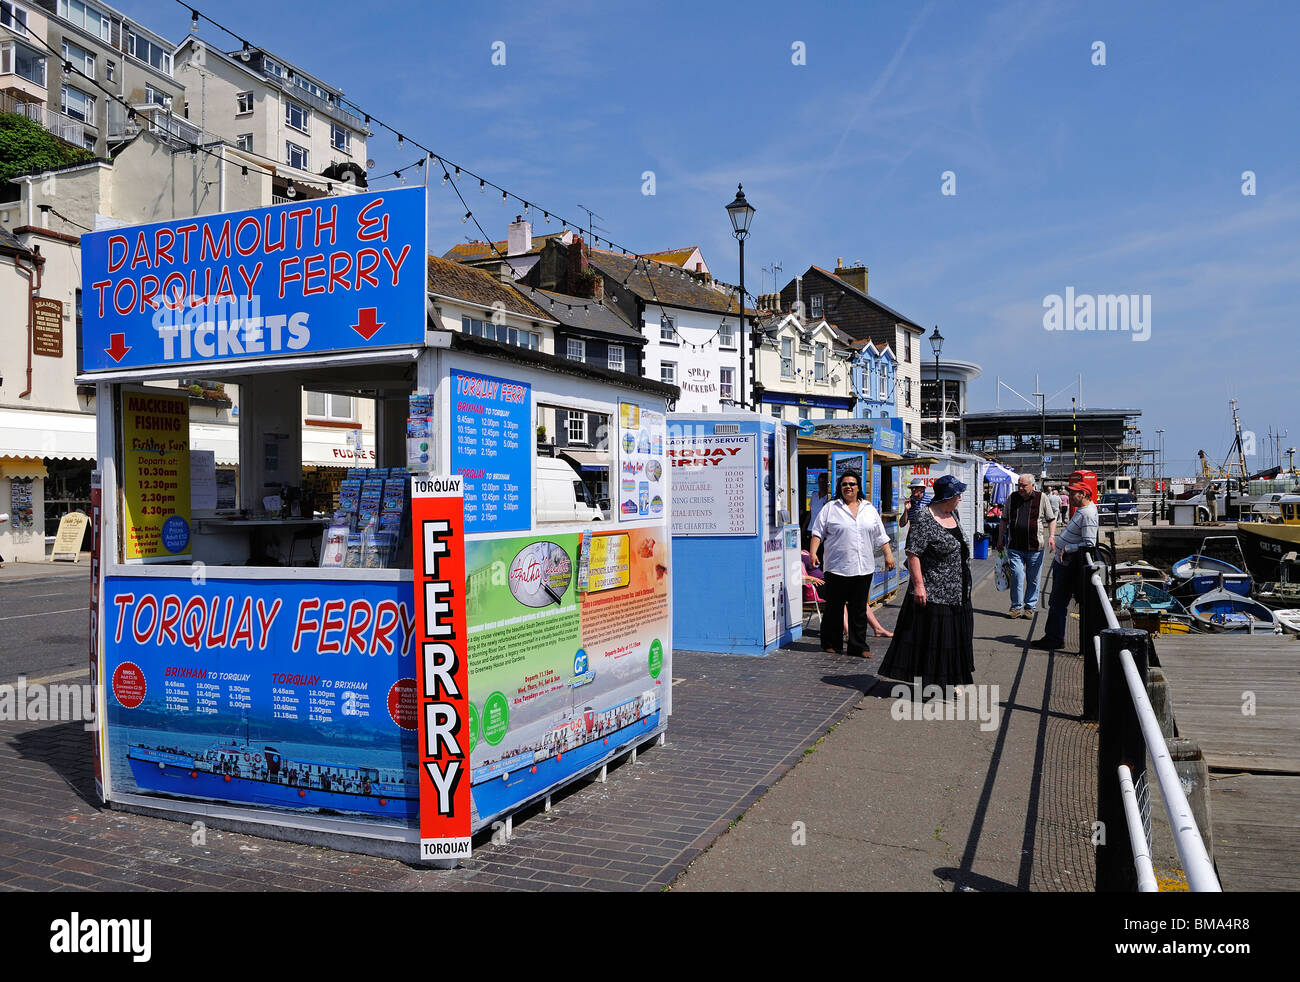 ferry ticket booths on the harbourside at brixham in devon, uk - Stock Image